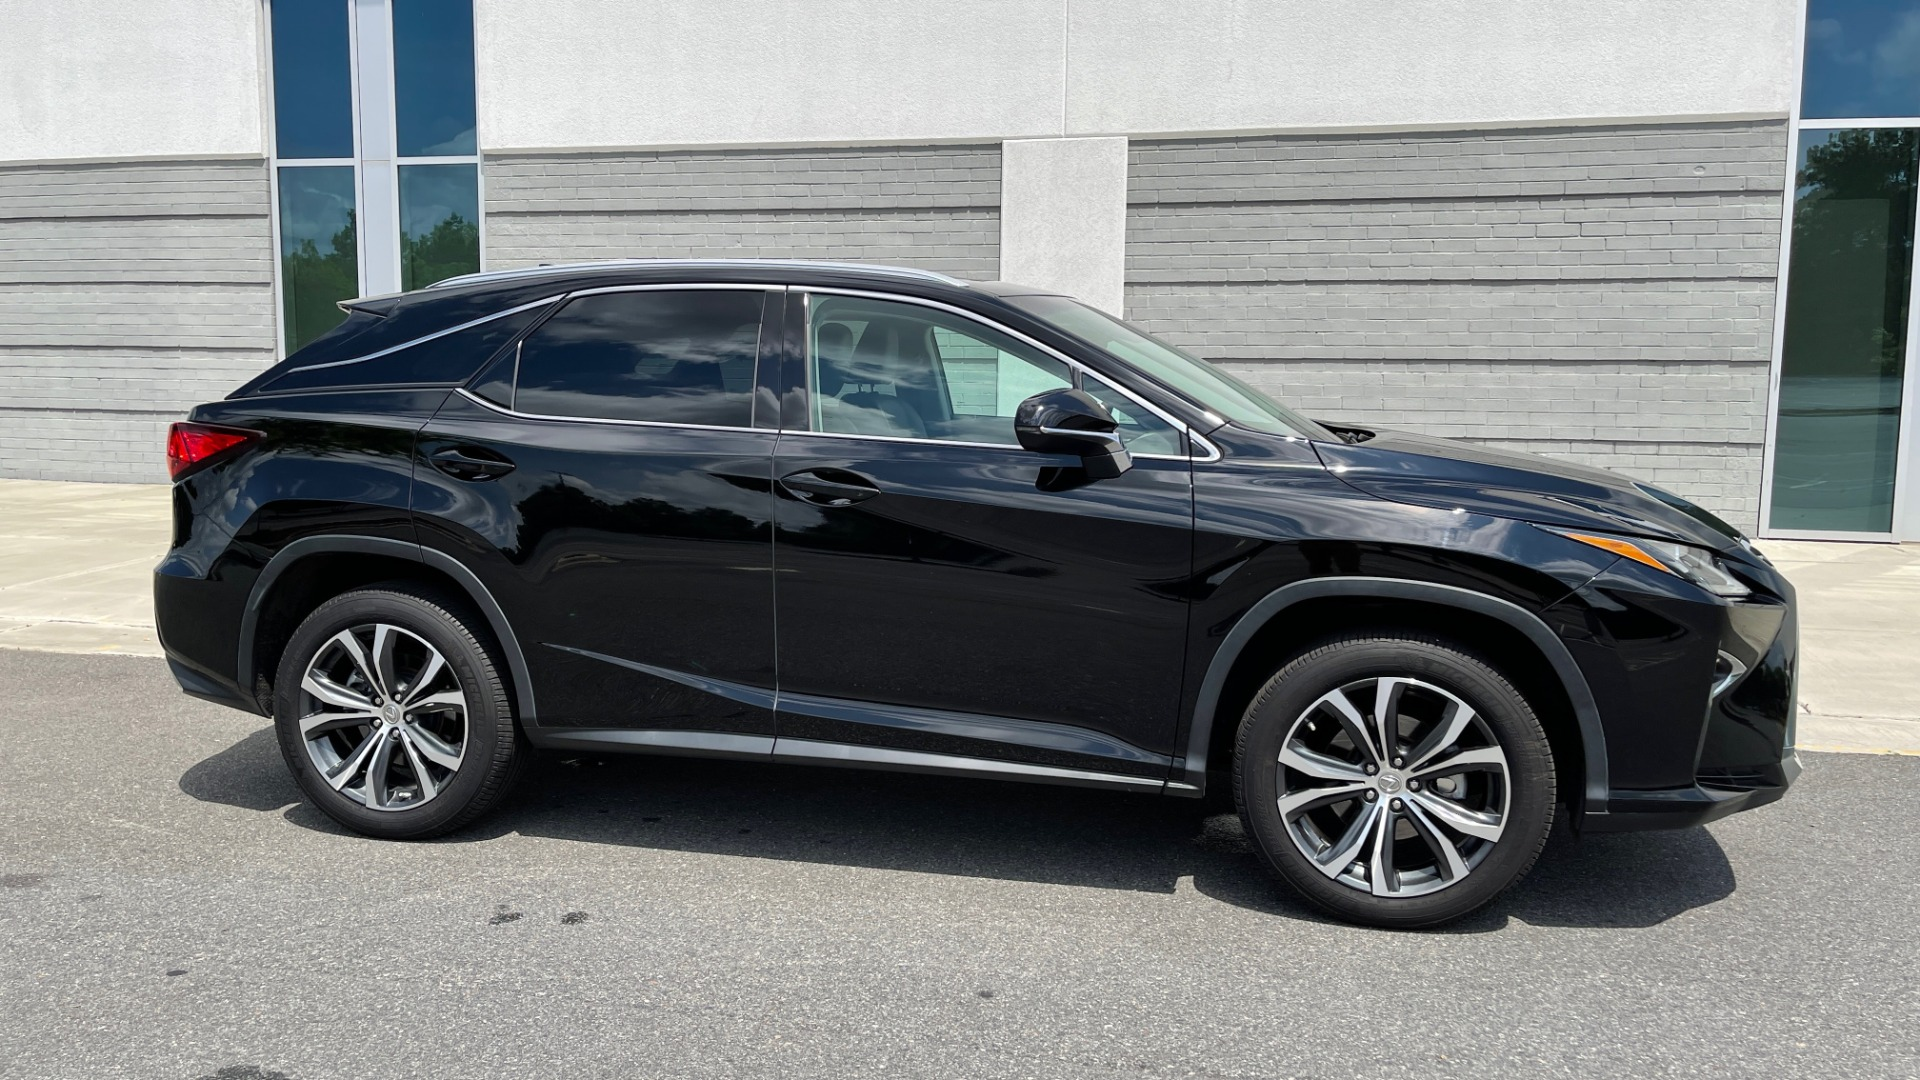 Used 2016 Lexus RX 350 PREMIUM / NAV / SUNROOF / BSM / PARK ASST / REARVIEW for sale $29,495 at Formula Imports in Charlotte NC 28227 7